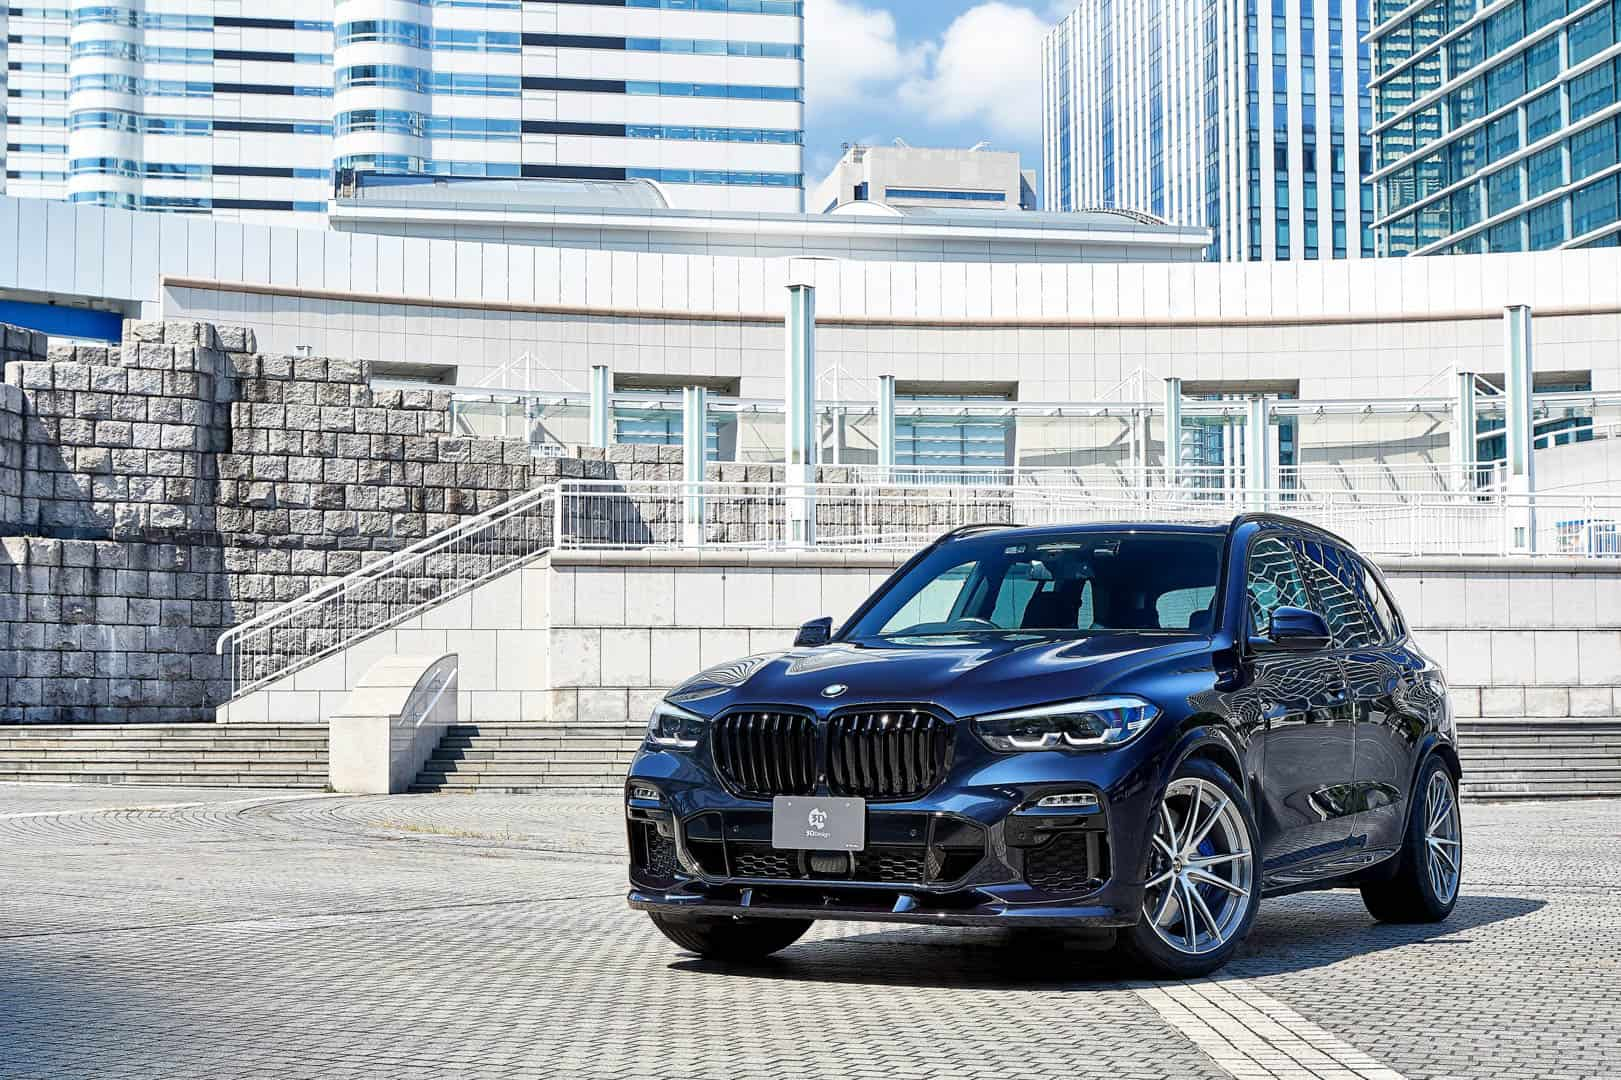 G05 Bmw X5 M Sport Tuning Kit From 3d Design Adds Some Style